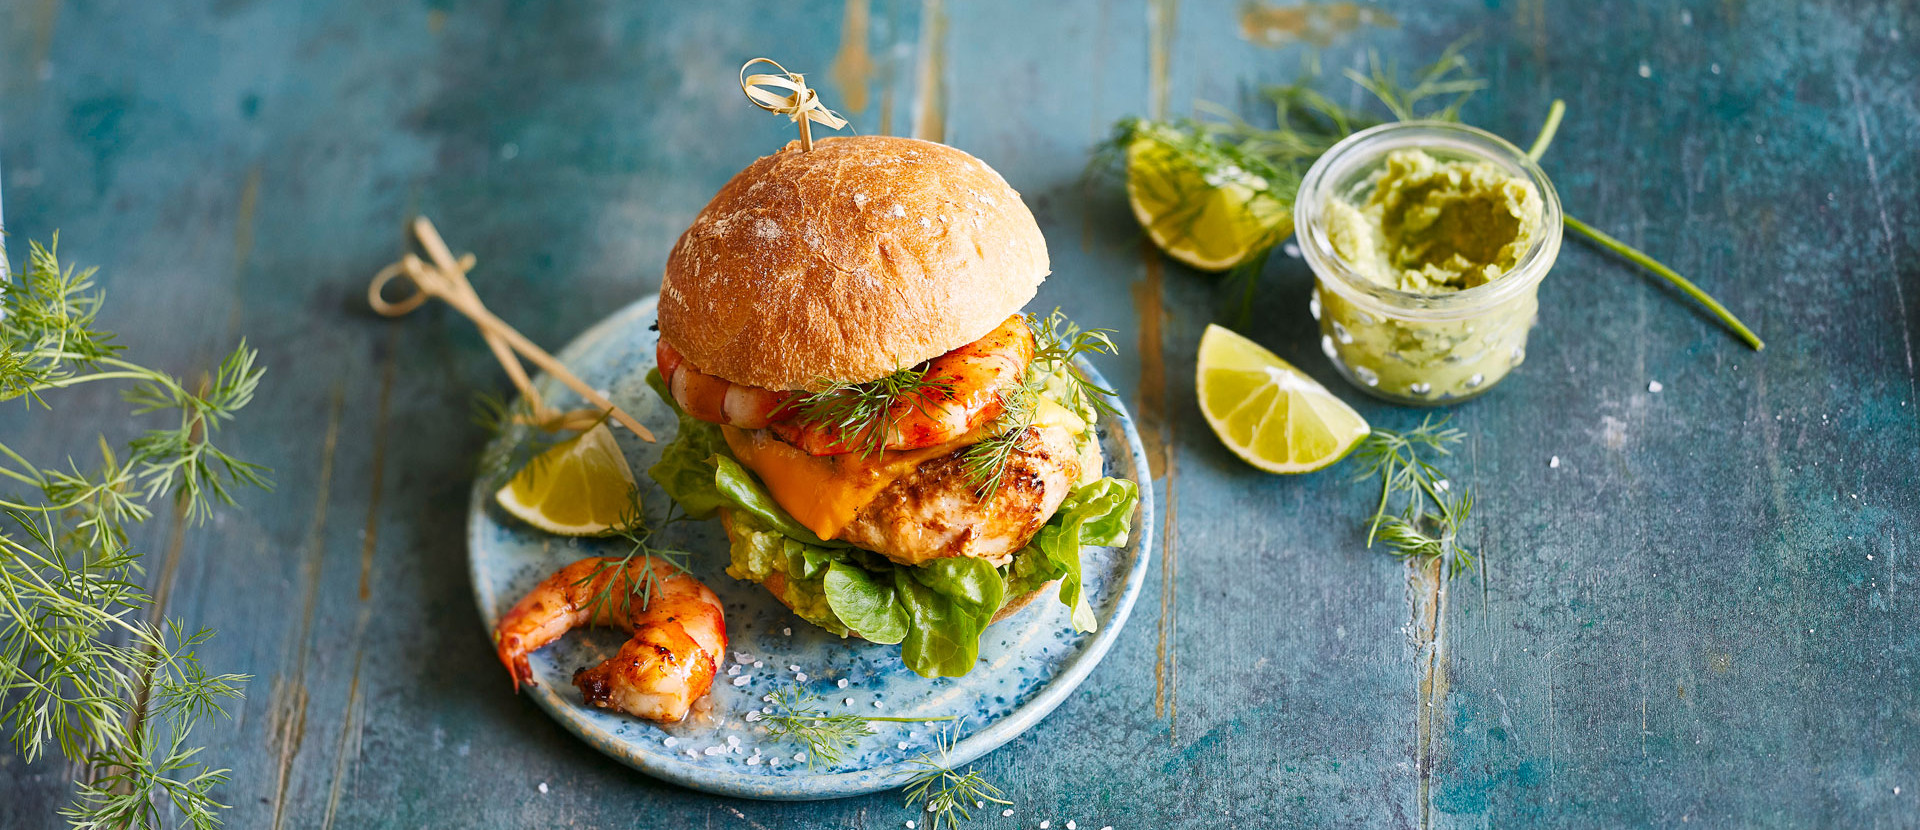 Surf and Turf Burger mit Avocadocreme